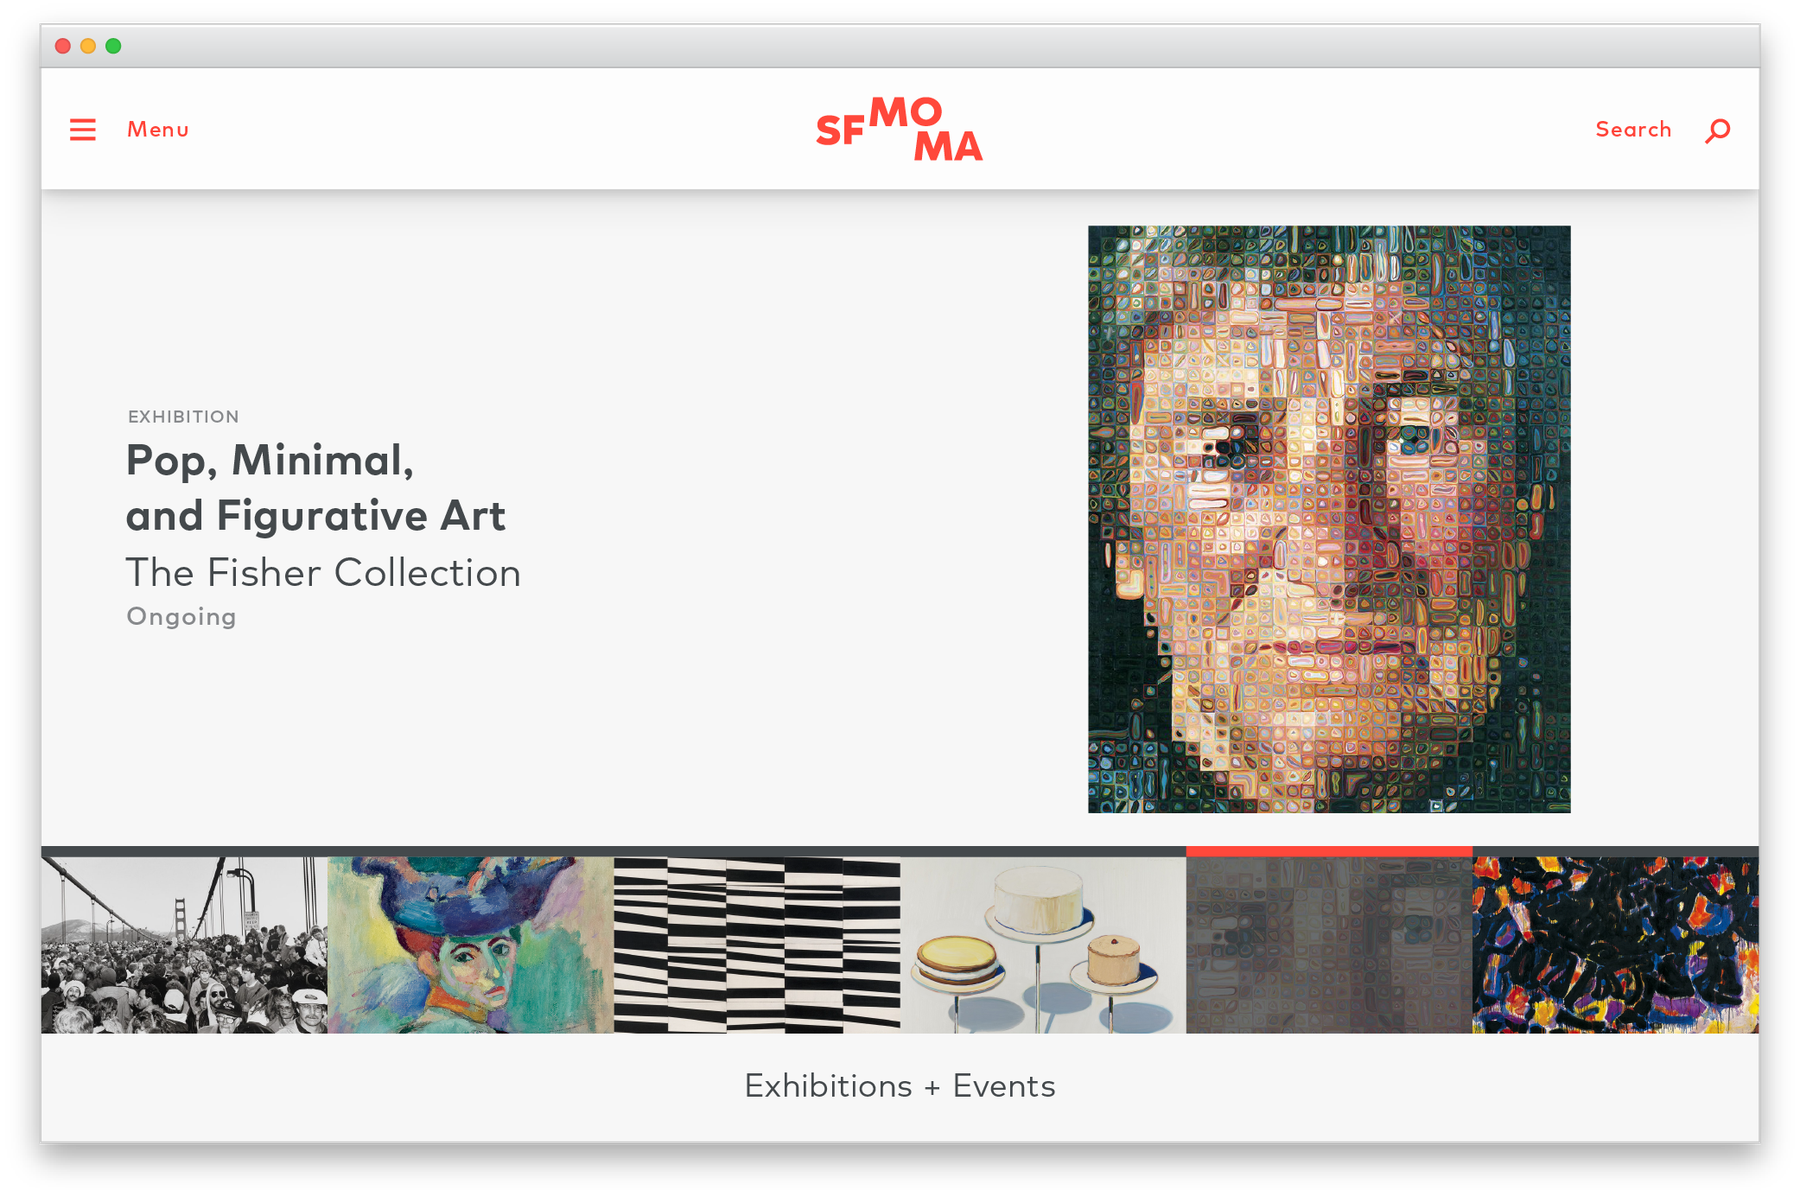 SFMOMA exhibition page